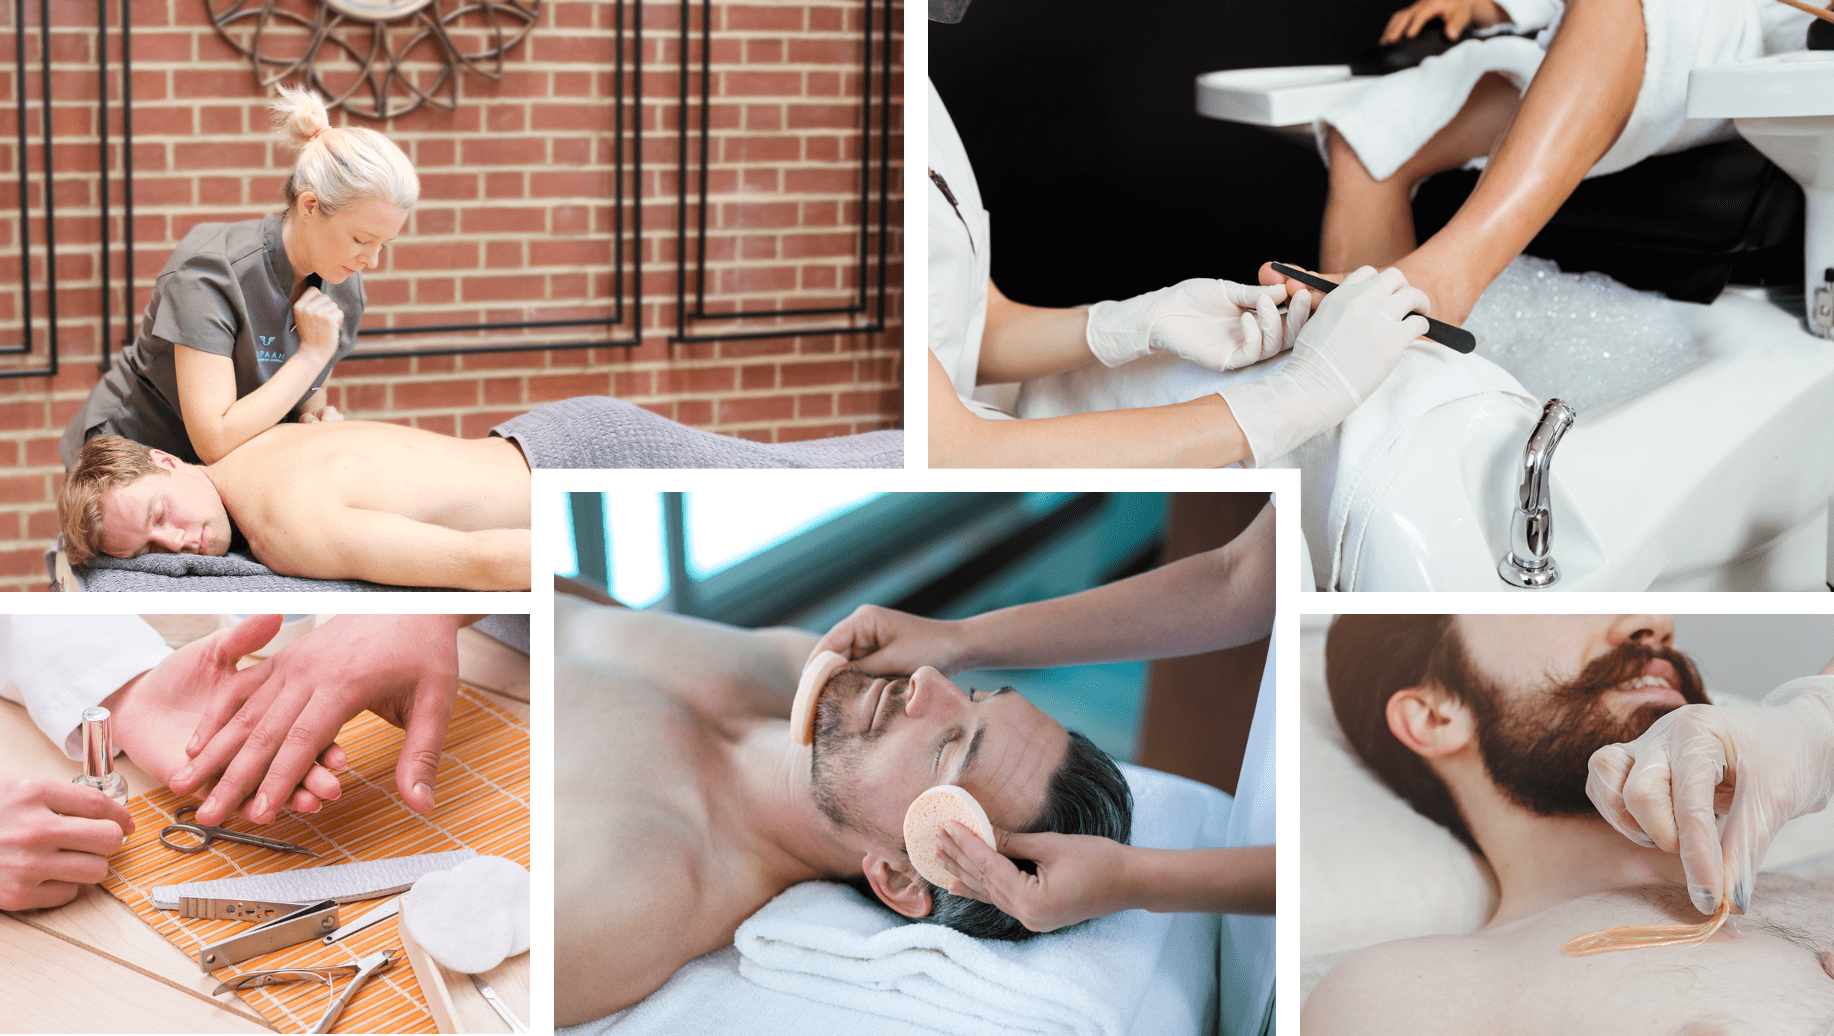 men's wellness and grooming services collage